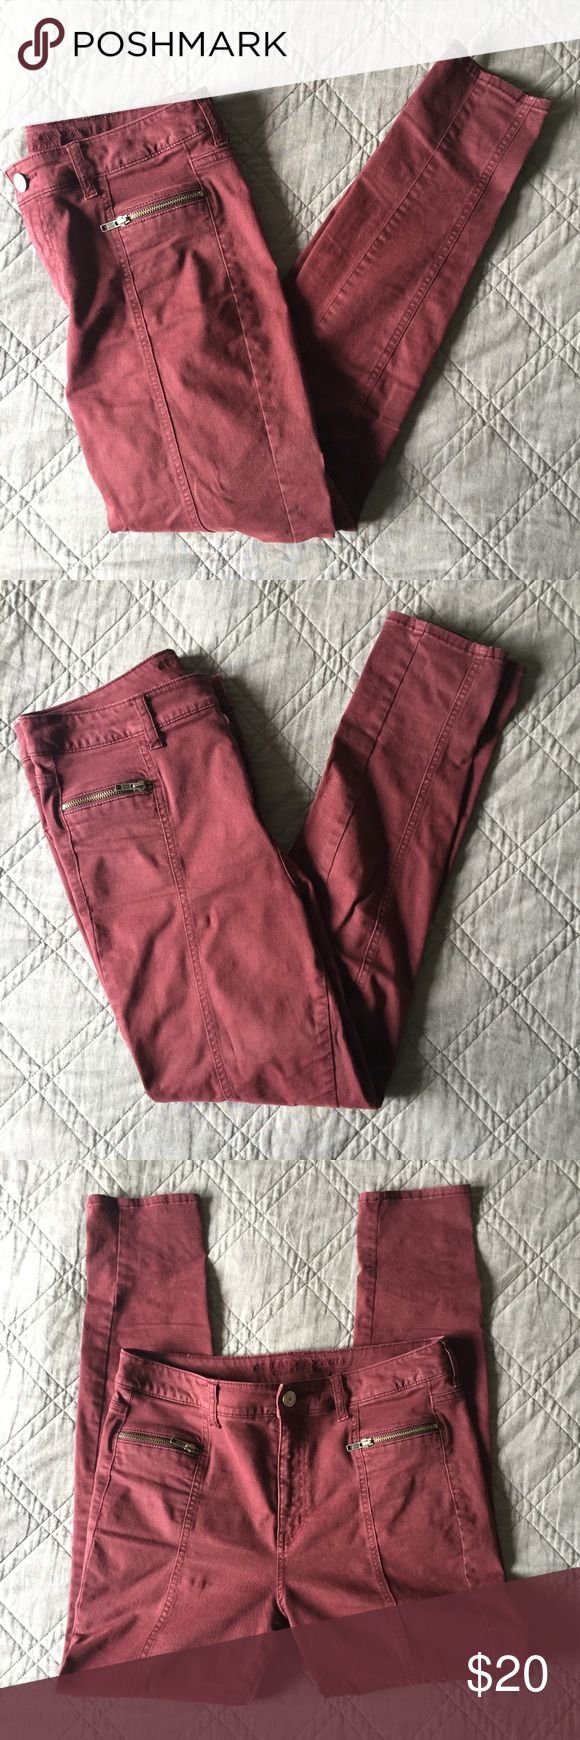 Maroon Zipper Pocket Skinny Jeans - Skinny pants with zipper pockets - Ribbing down the front - Light wear, no fading or tears - Bundle with 2+ other items for an extra discount! ✨ - Ships out within 48 mailing hours 📬 American Eagle Outfitters Jeans Skinny